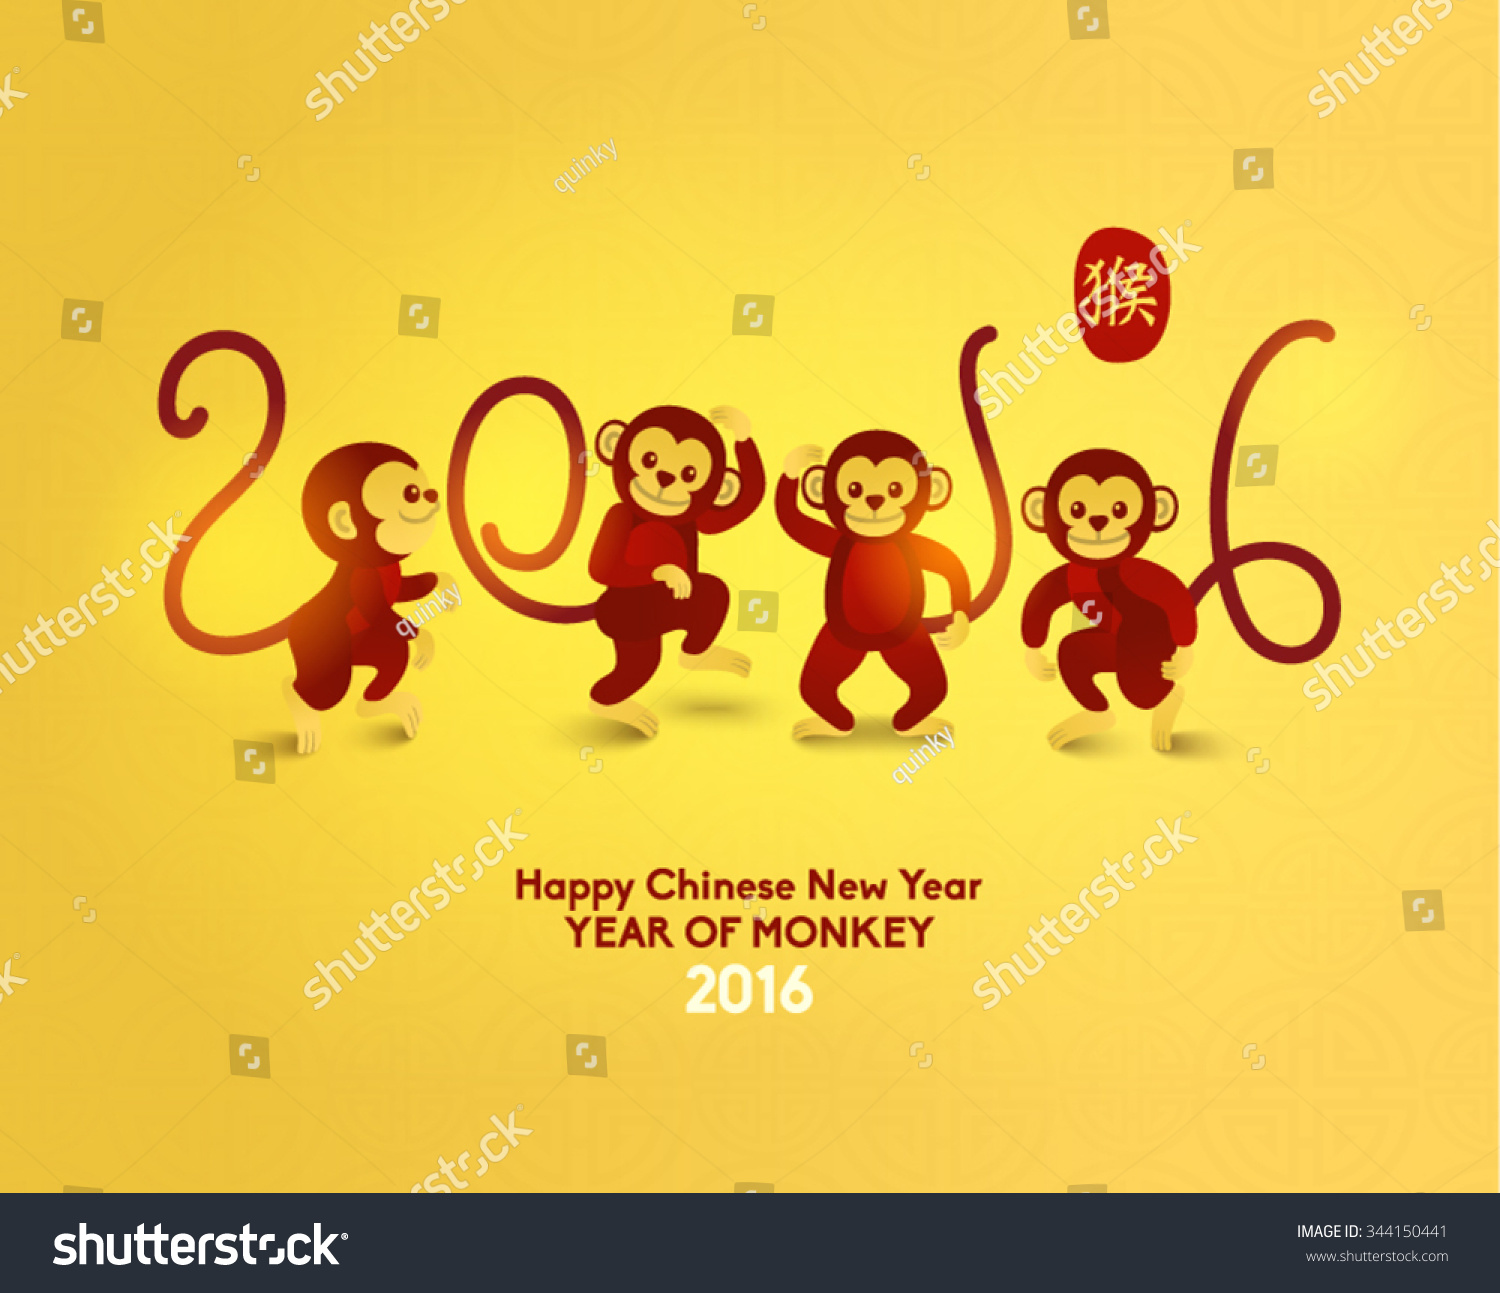 Happy Chinese New Year 2016 Year of Monkey Vector Design Chinese